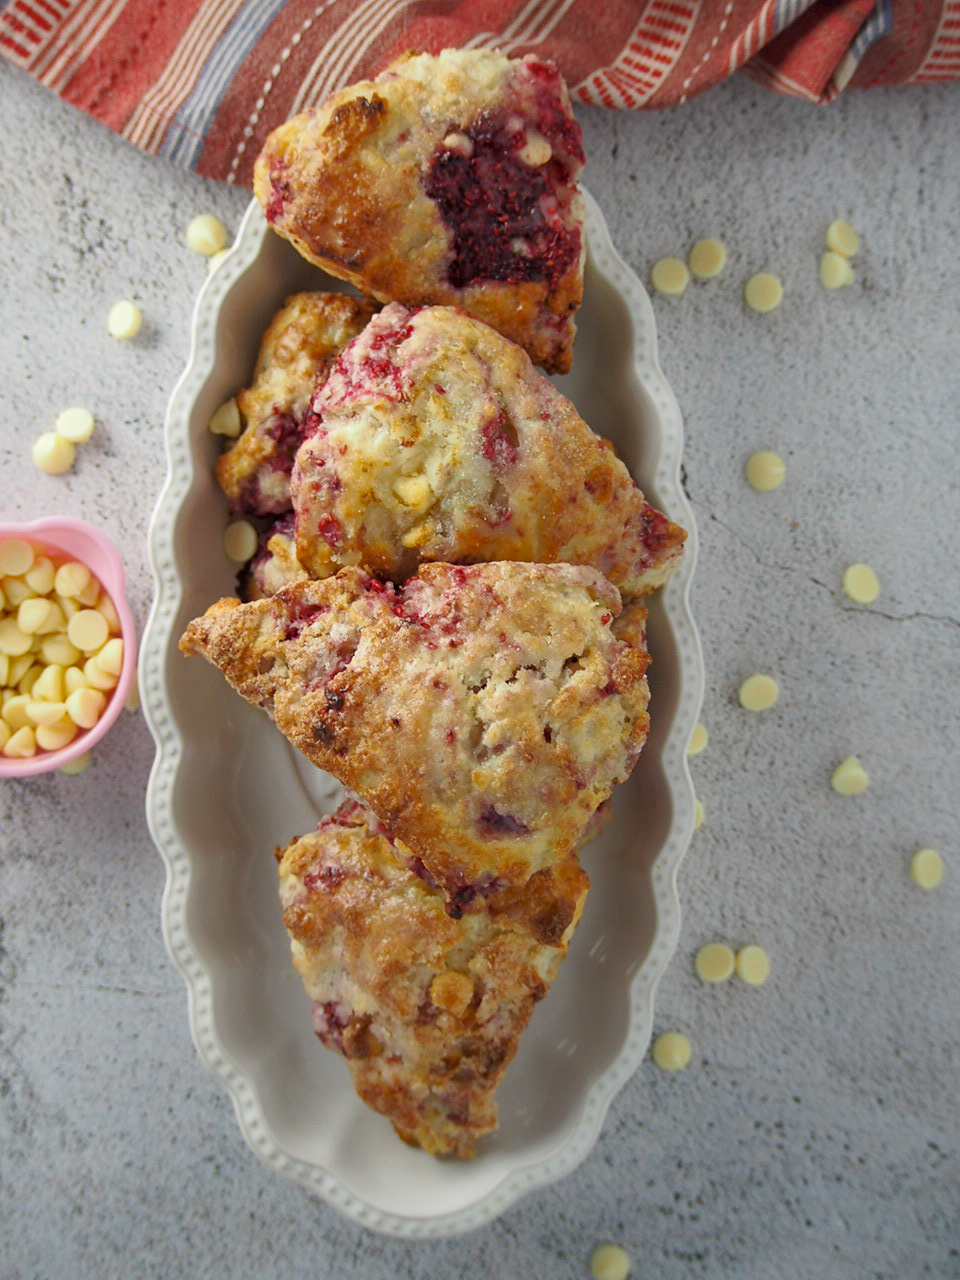 Raspberry Scones on a serving plate.